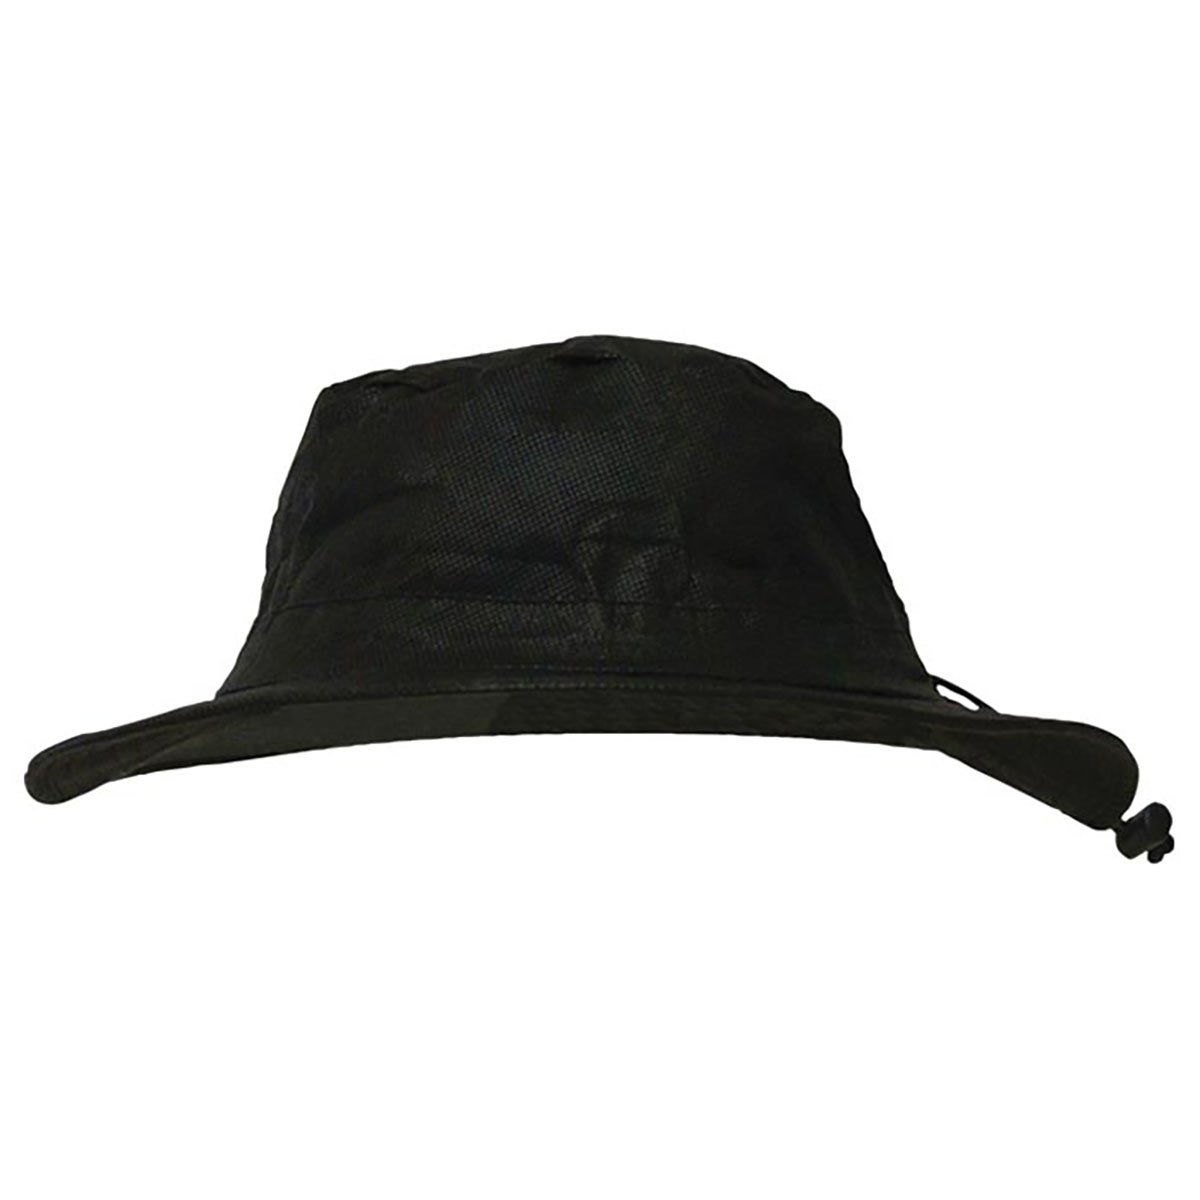 c6036a333dd06 Frogg Toggs Breathable Boonie Hat durable service - www ...